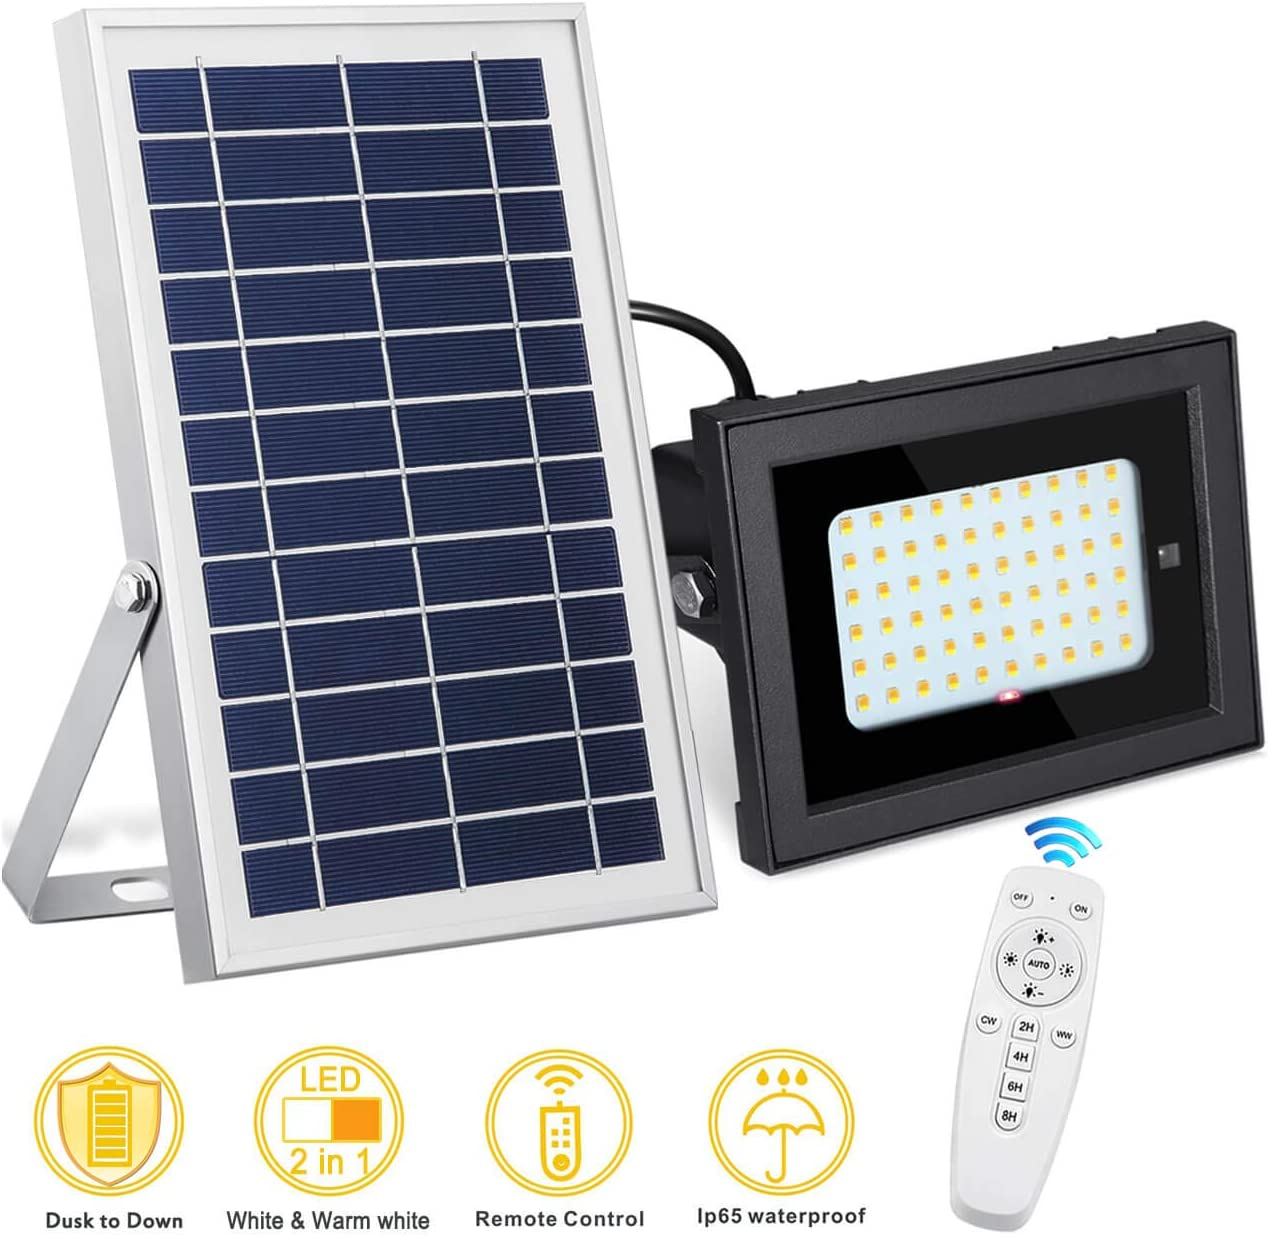 SEMILITS Solar Flood Lights Outdoor Waterproof Solar Billboard Light Dusk to Dawn 60 LED Security Lights with Remote for Backyard Gazebo Pool Upgraded – White Warm White Freely Switching